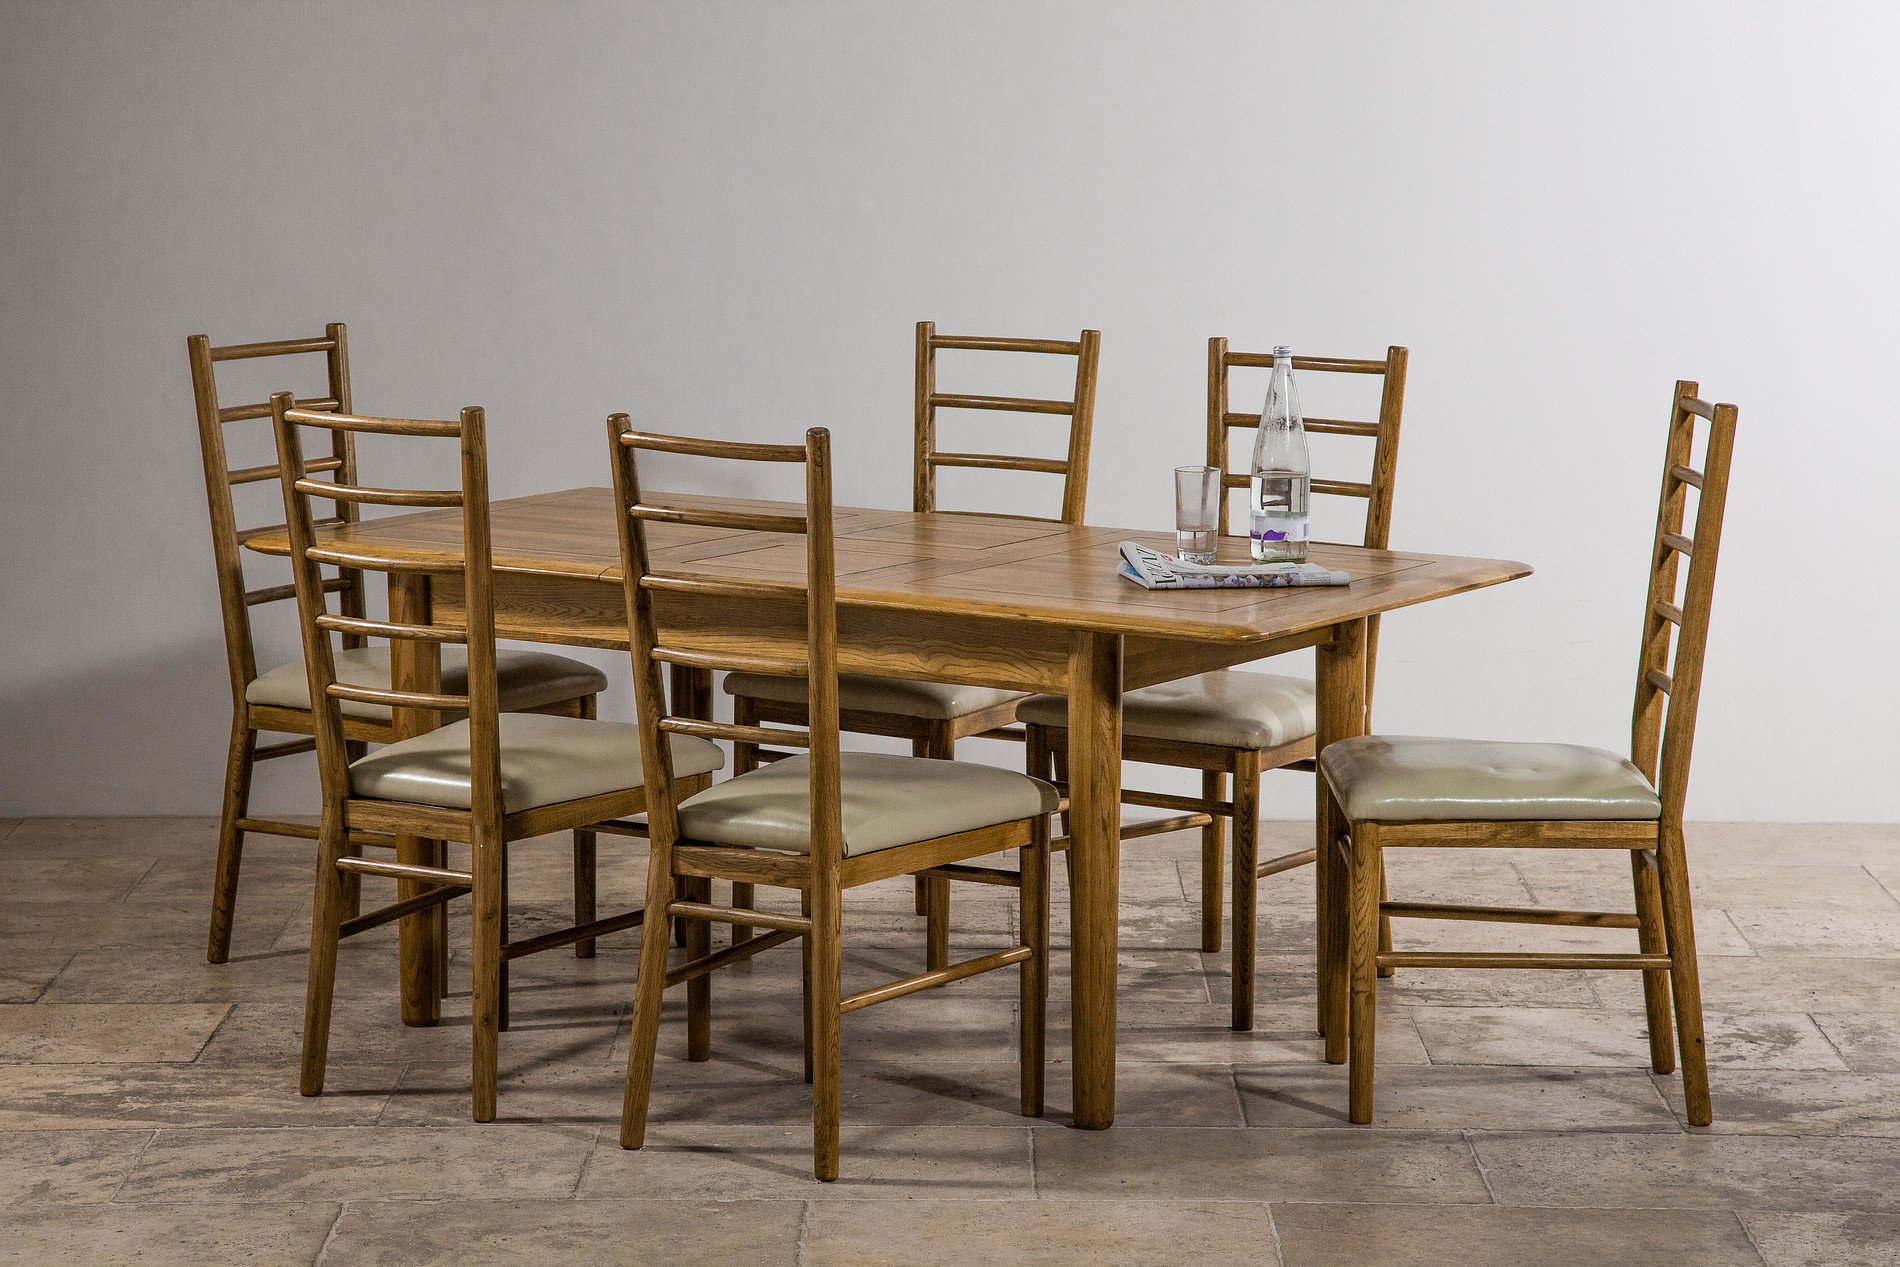 Antique Dining Room Tables For Sale Uk Dining Table Osaka Rustic Solid Oak Ft X Ft Extending Dining Table